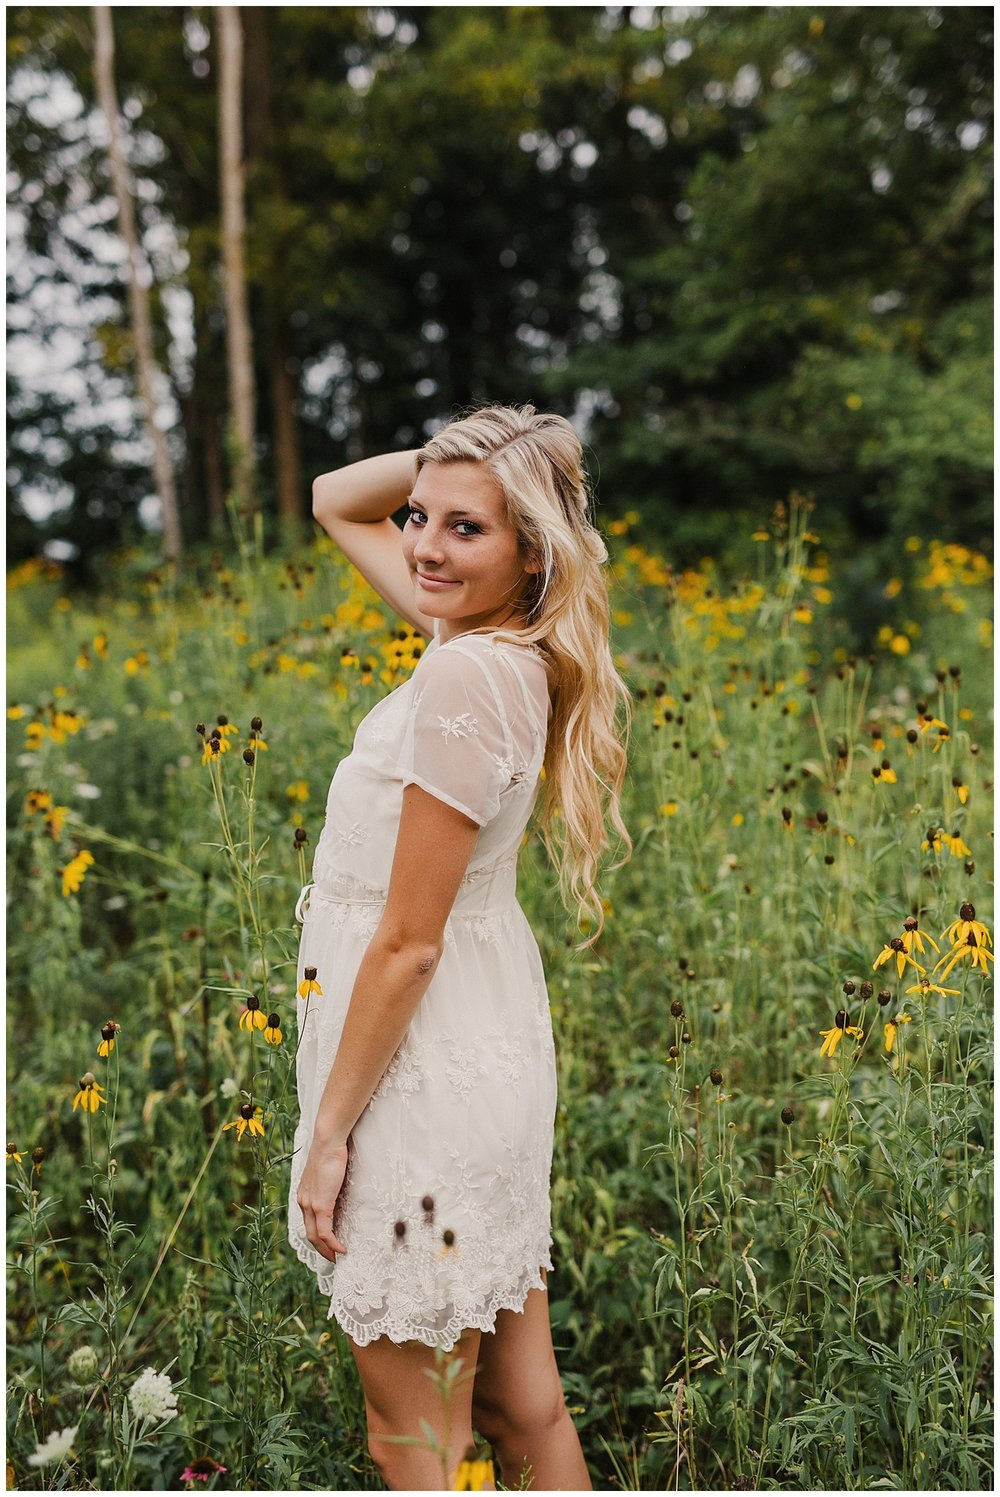 lindybeth photography - senior pictures - lexi-138.jpg